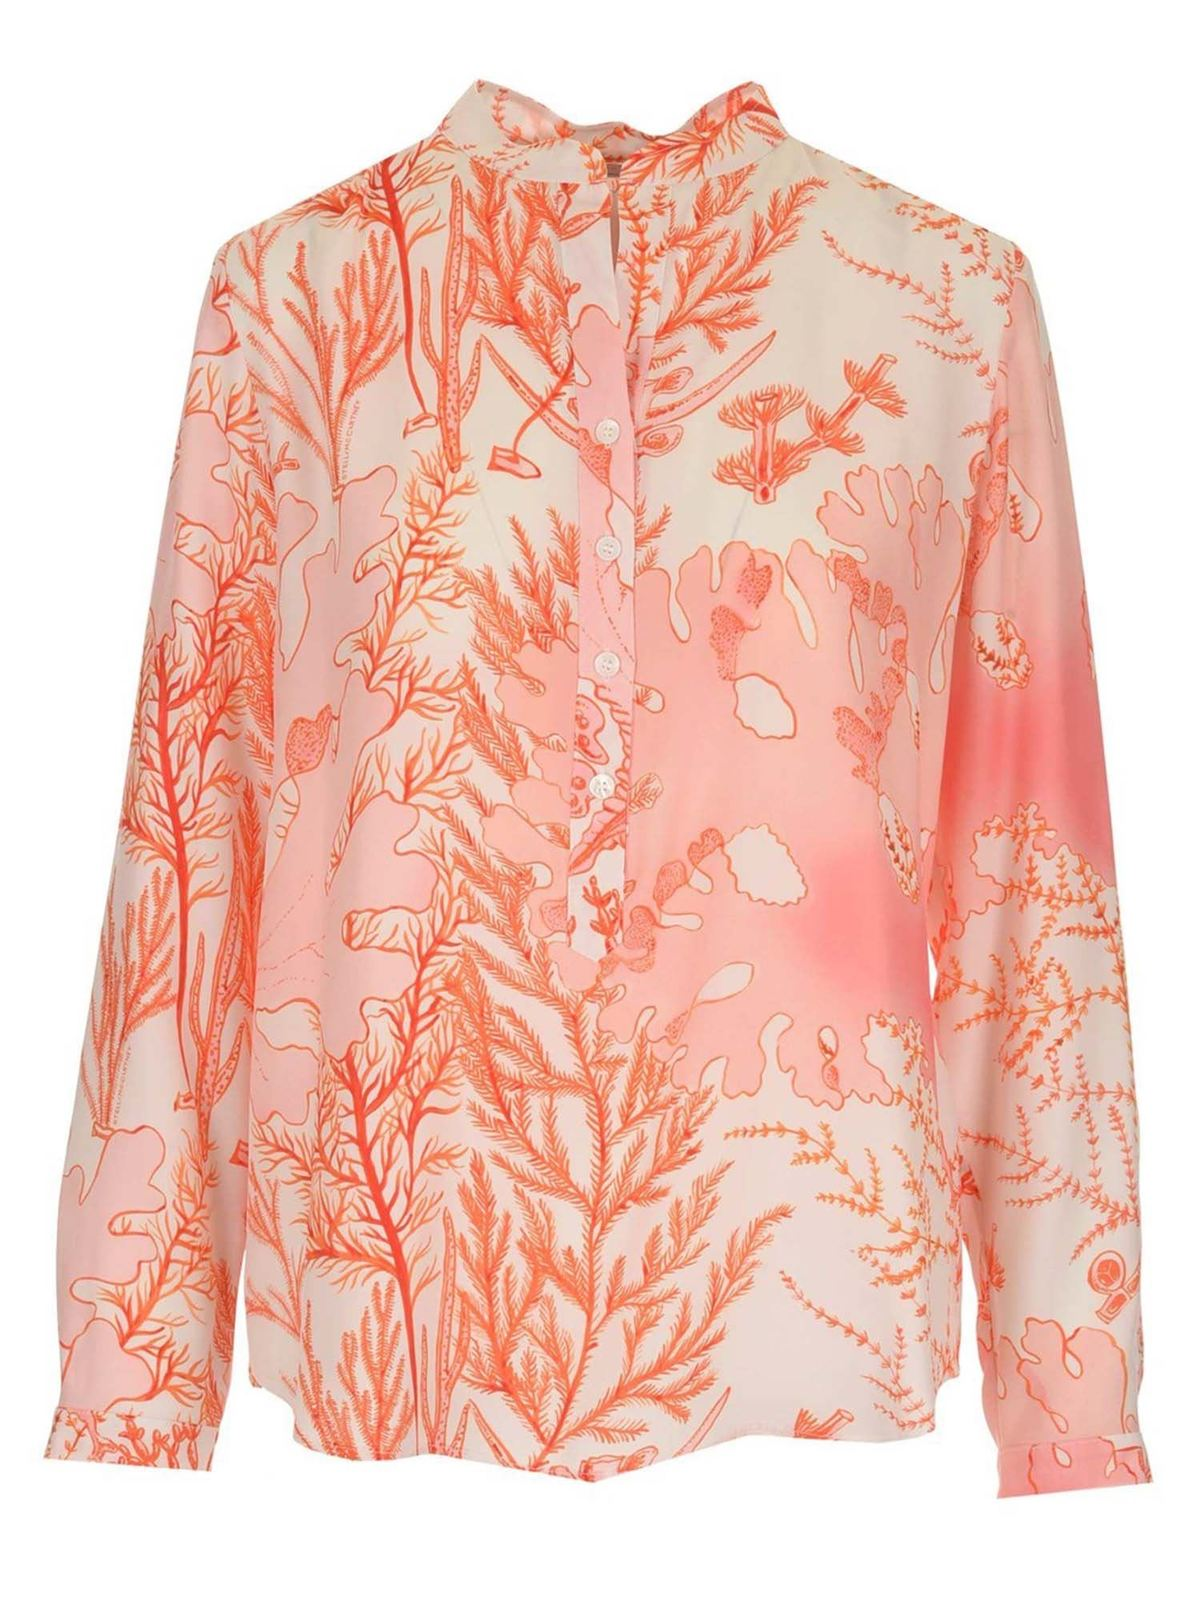 Stella Mccartney EVA BLOUSE IN PINK